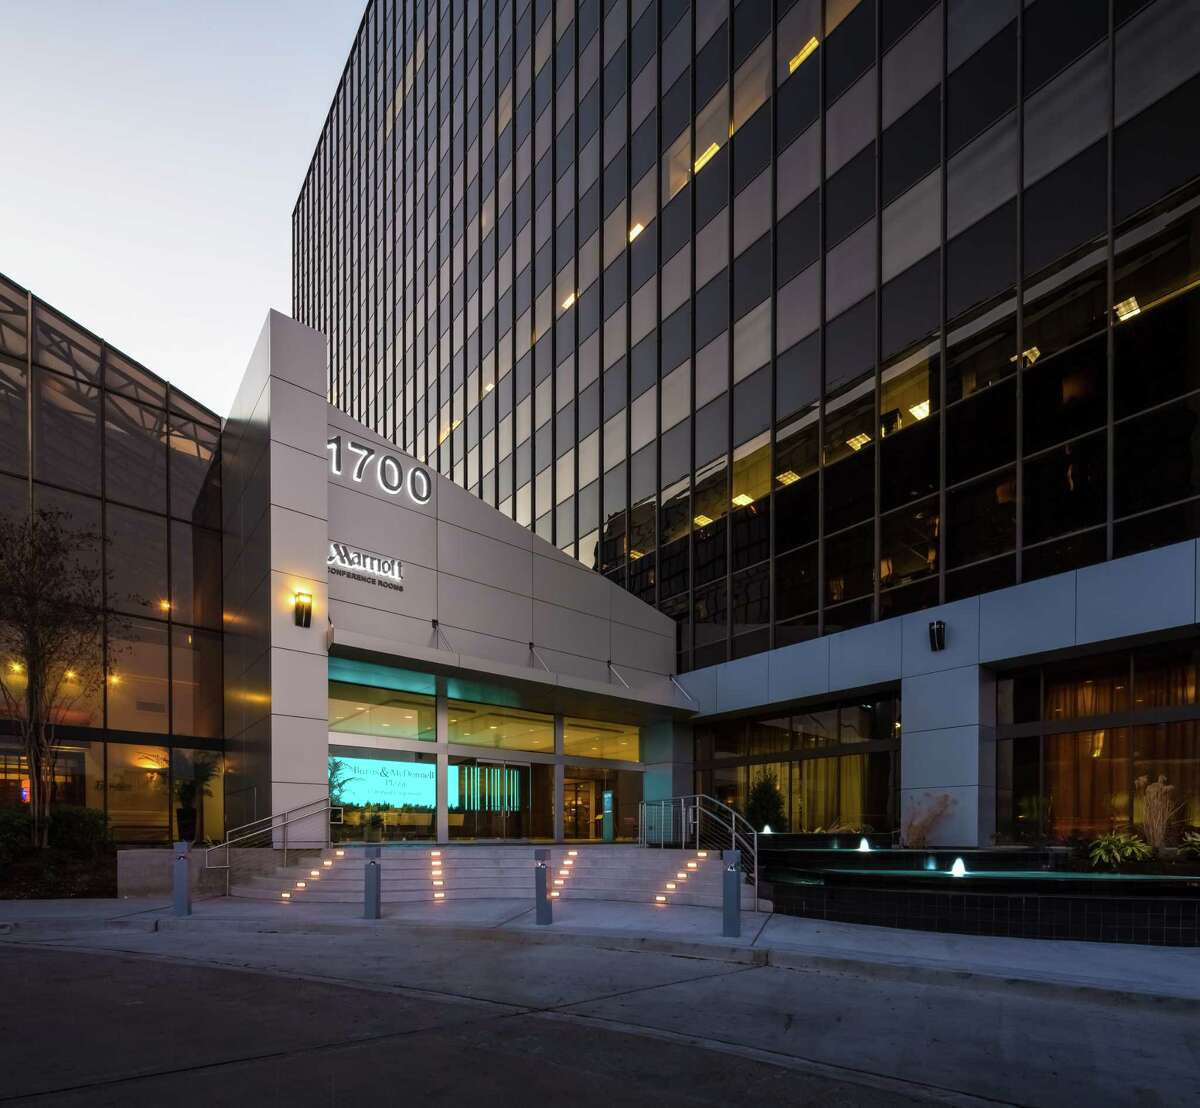 Lingerfelt CommonWealth Partners has acquired Burns & McDonnell Plaza, a 14-story office building at 1700 West Loop, for $52 million.